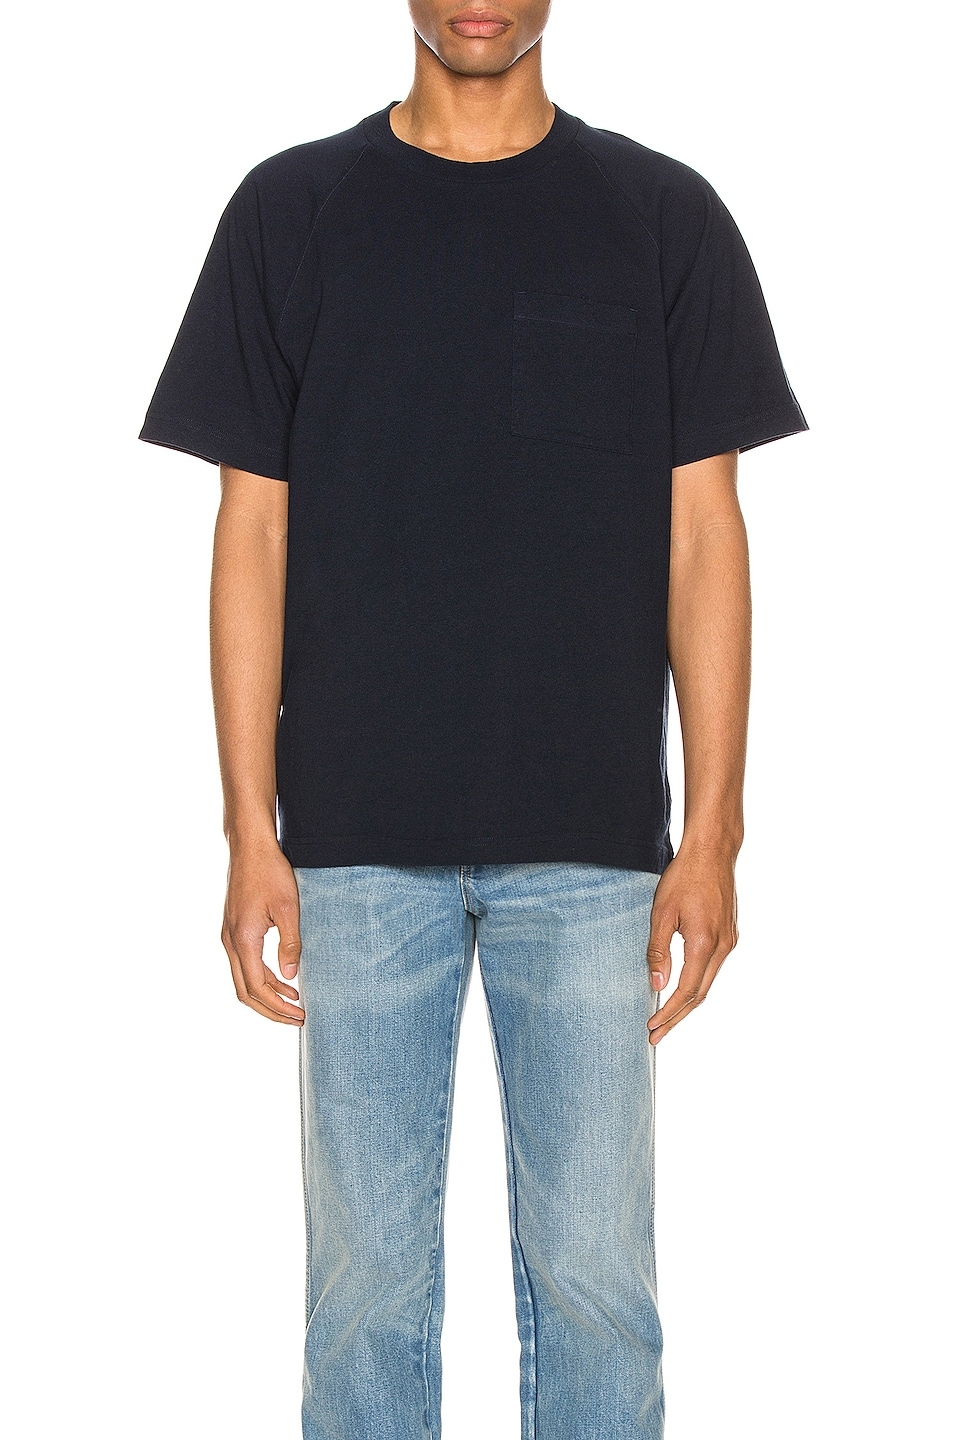 Image 2 of Acne Studios Graphic Tee in Navy Blue